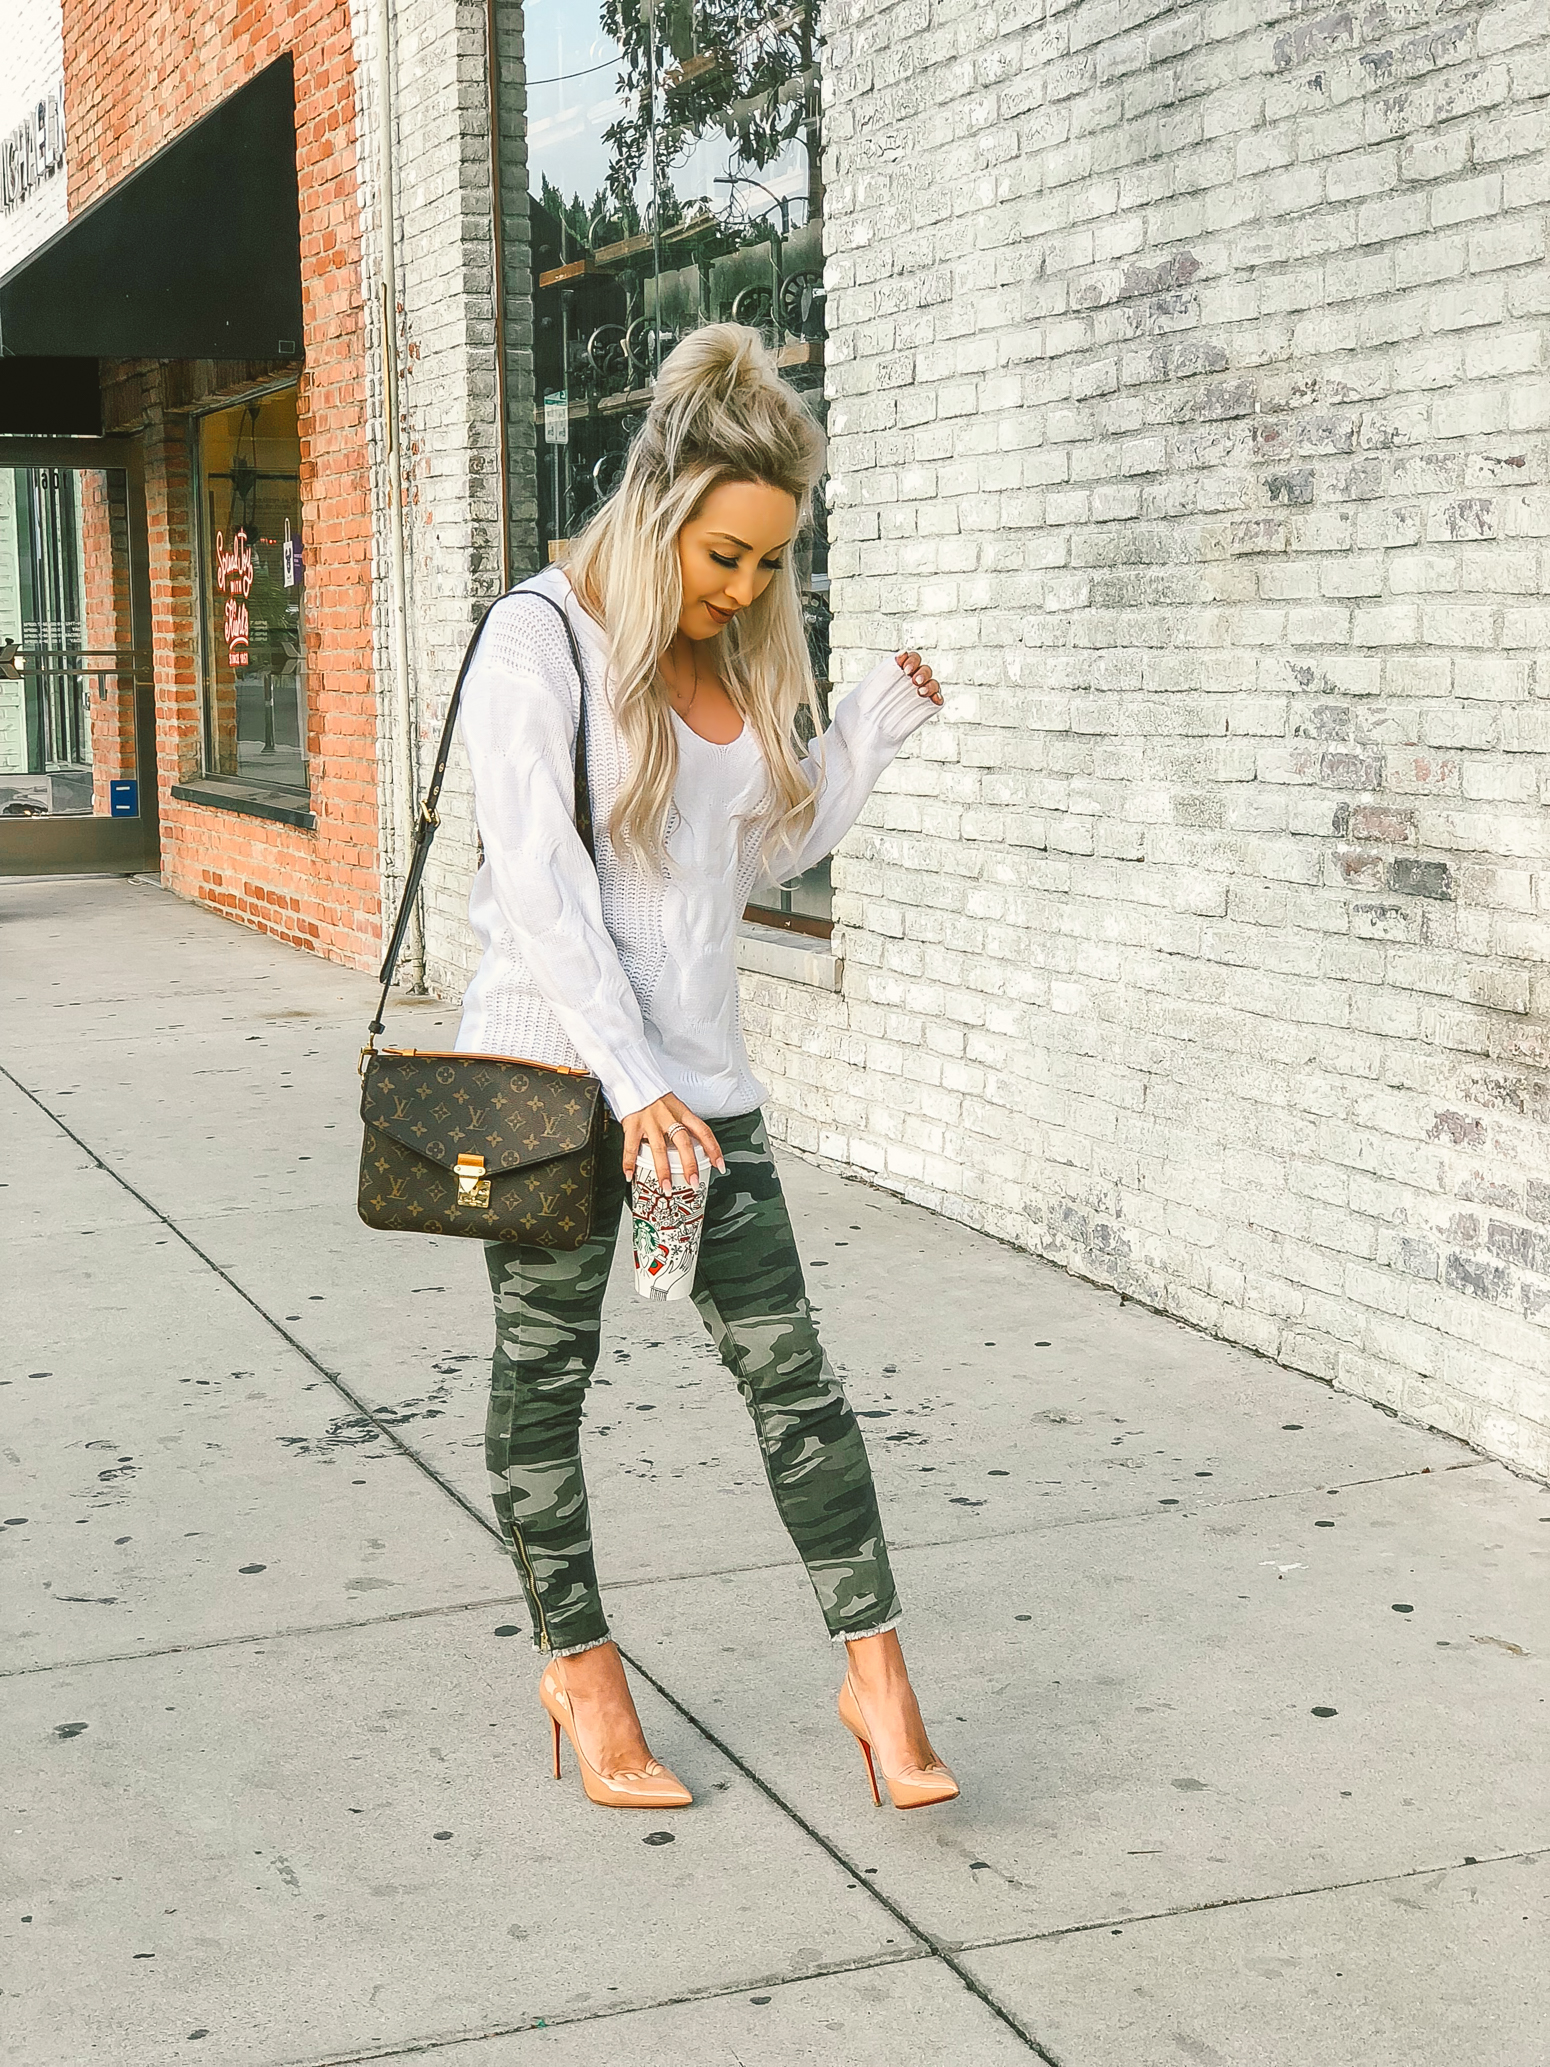 Blondie in the City | Camouflage Jeans, White Sweater | Nude Louboutins, Louis Vuitton Bag | Fall Fashion